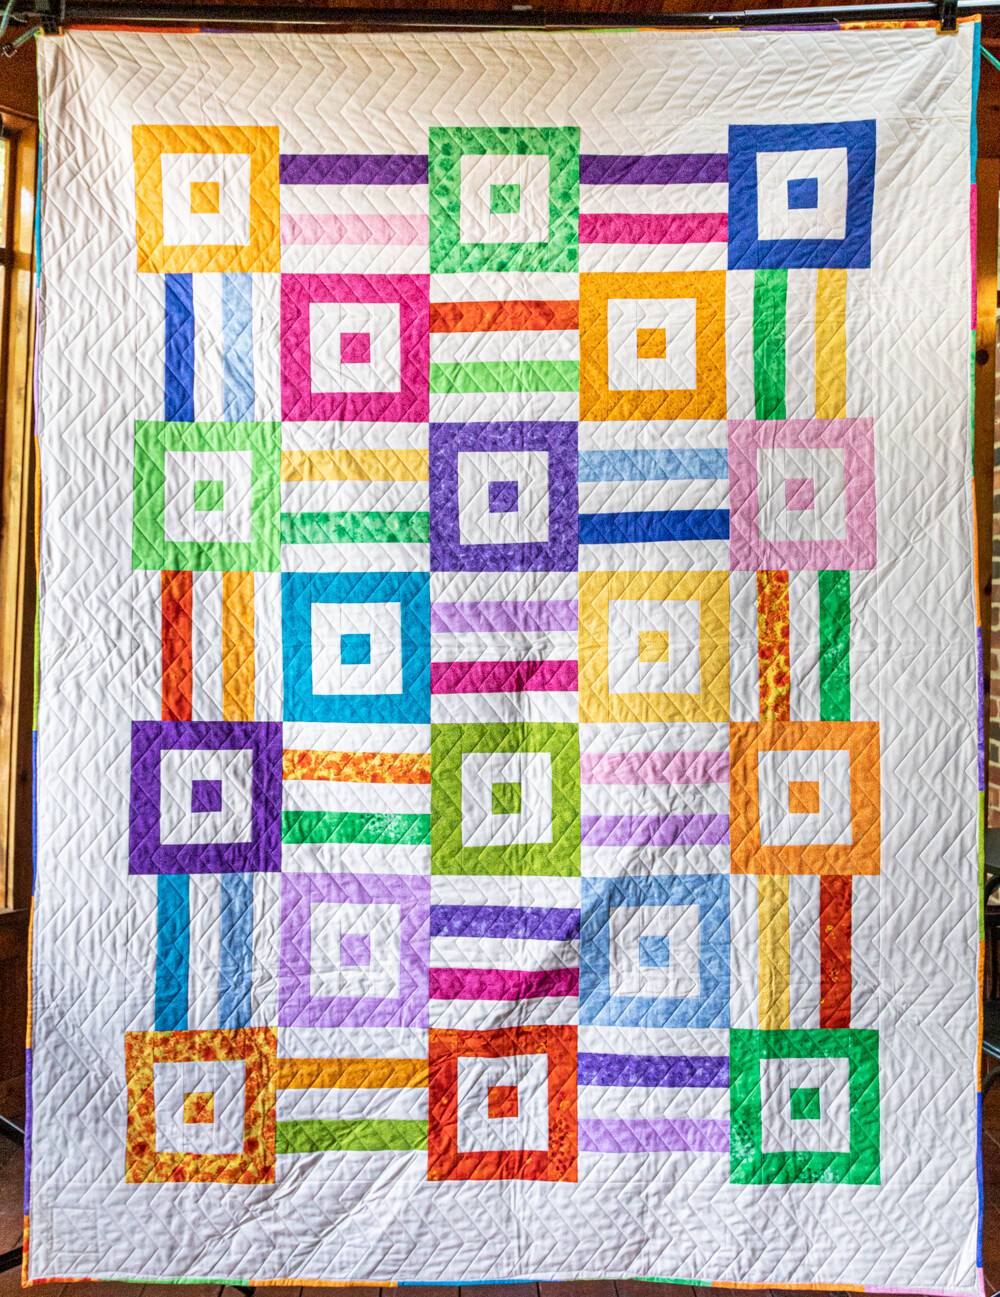 Quilt #10 - Connected Boxes